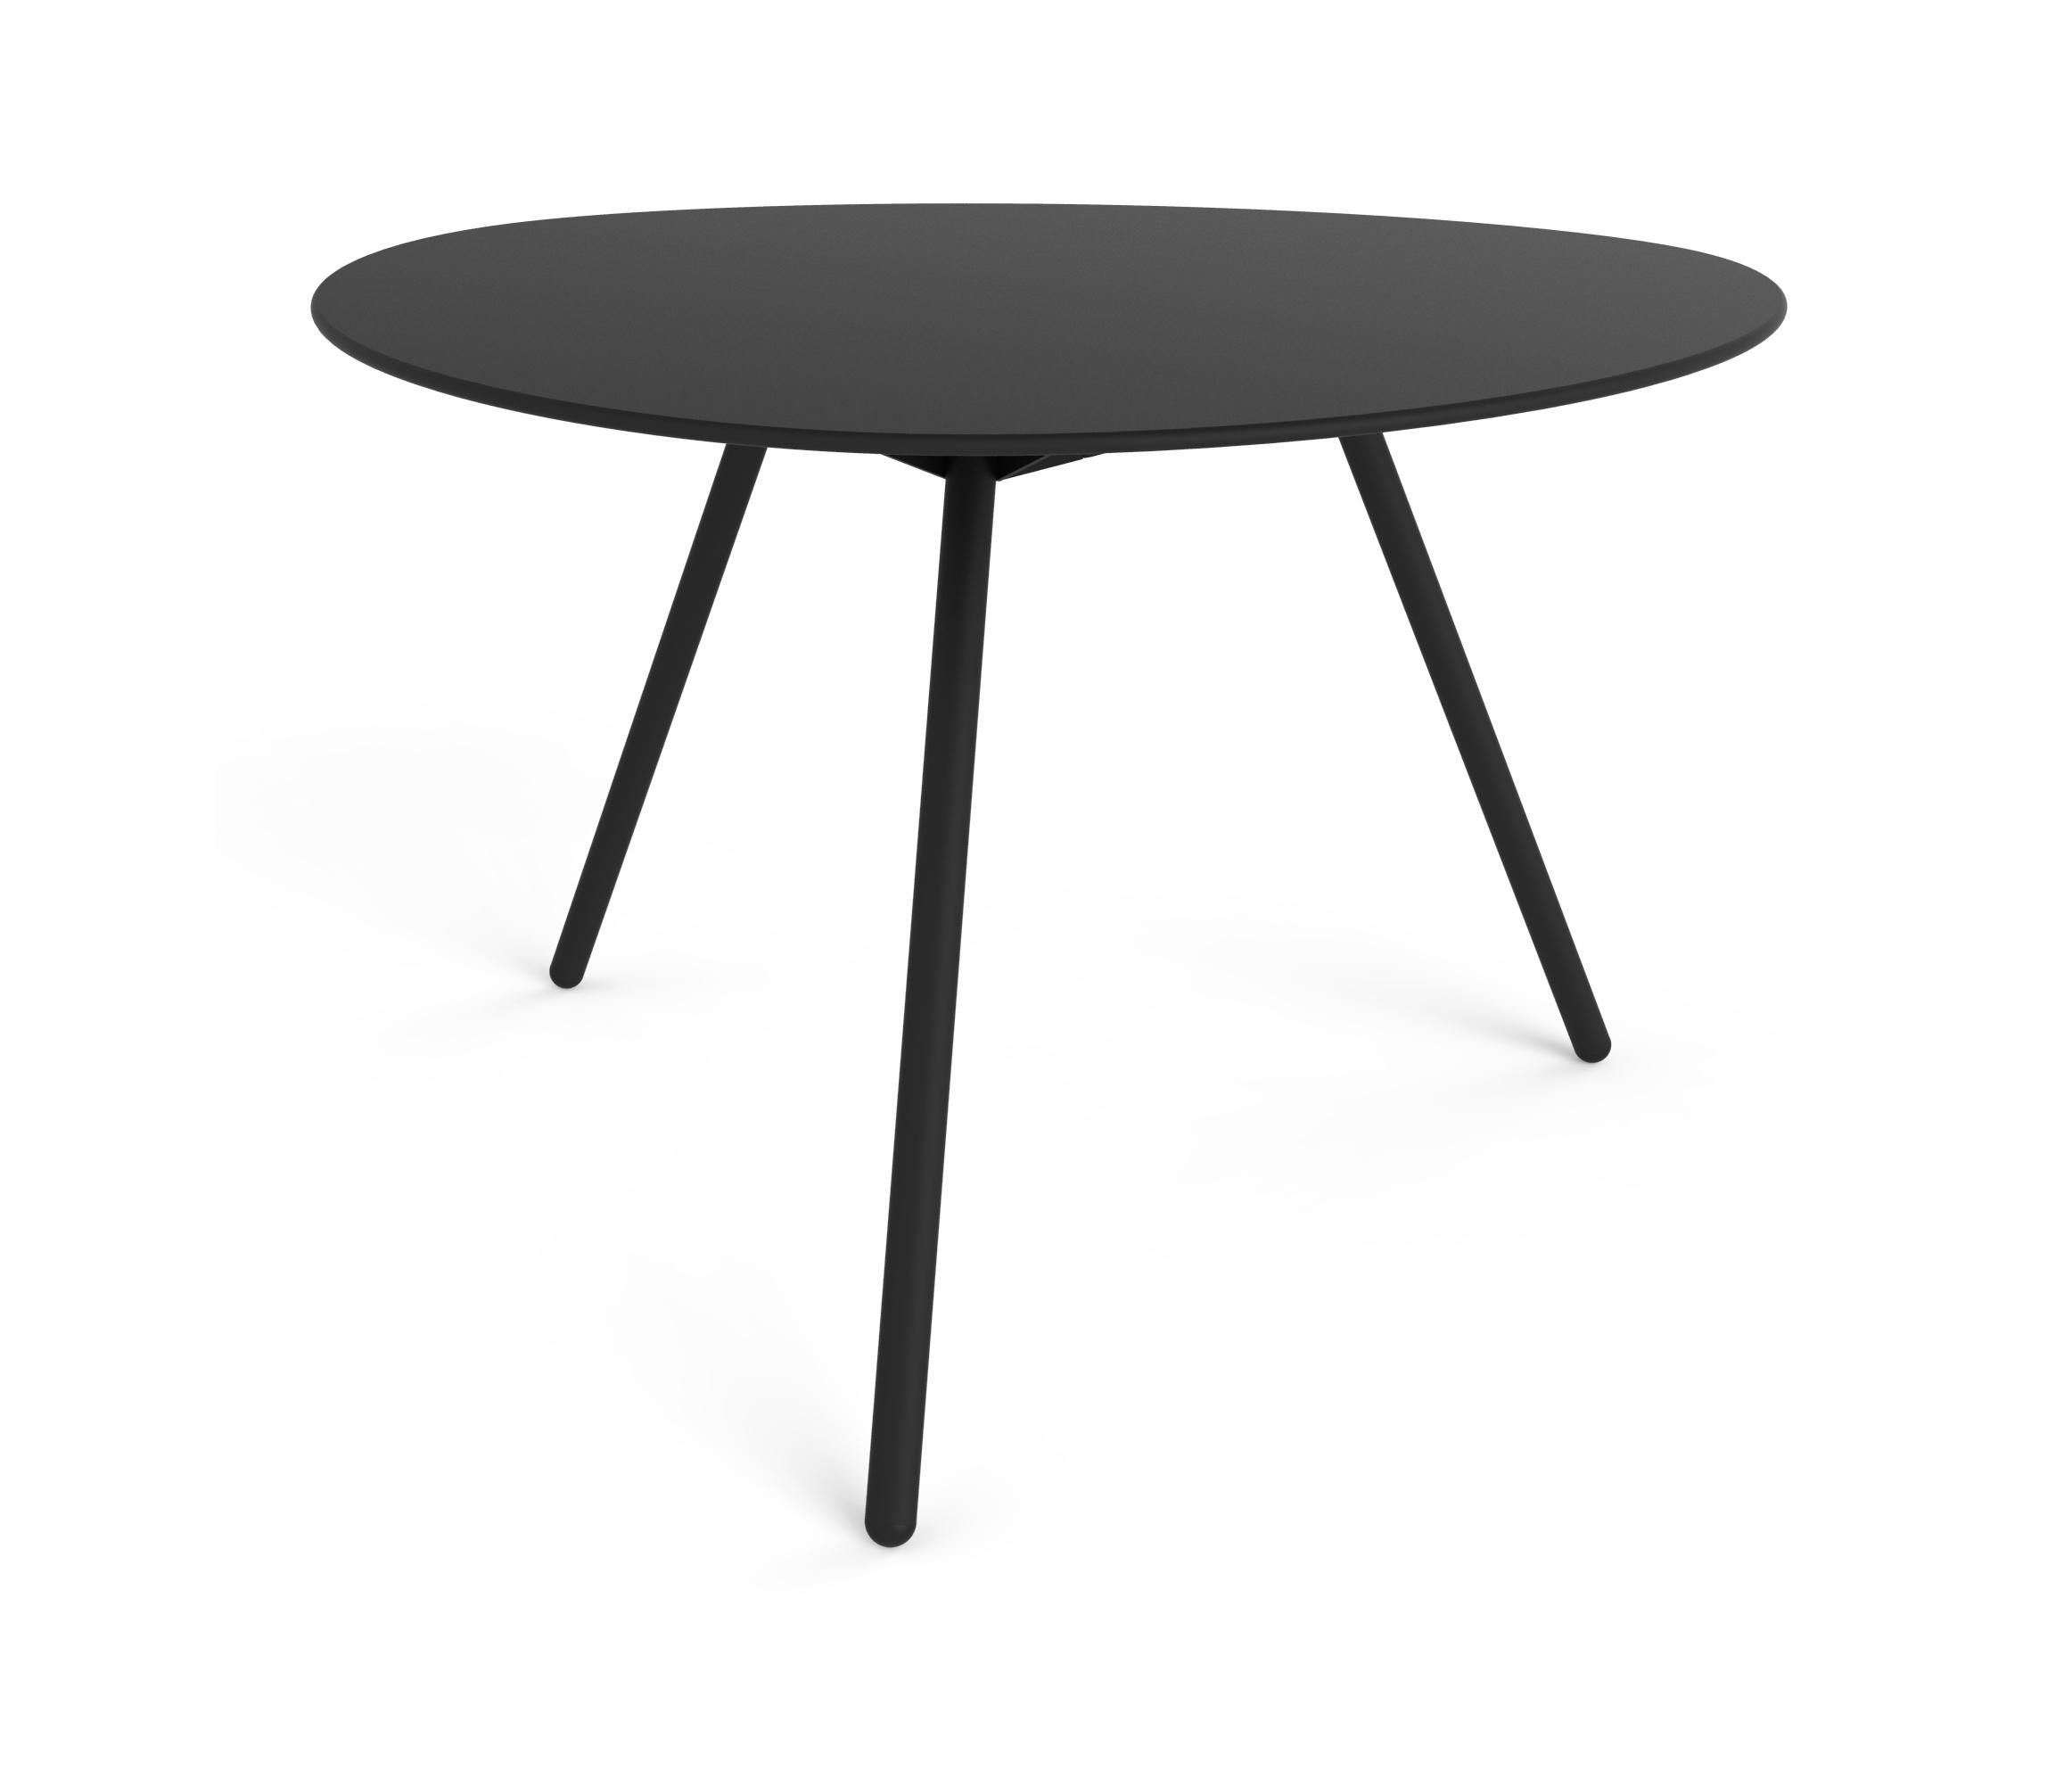 Dine A Lowha D120 H75 Dinner Table Architonic